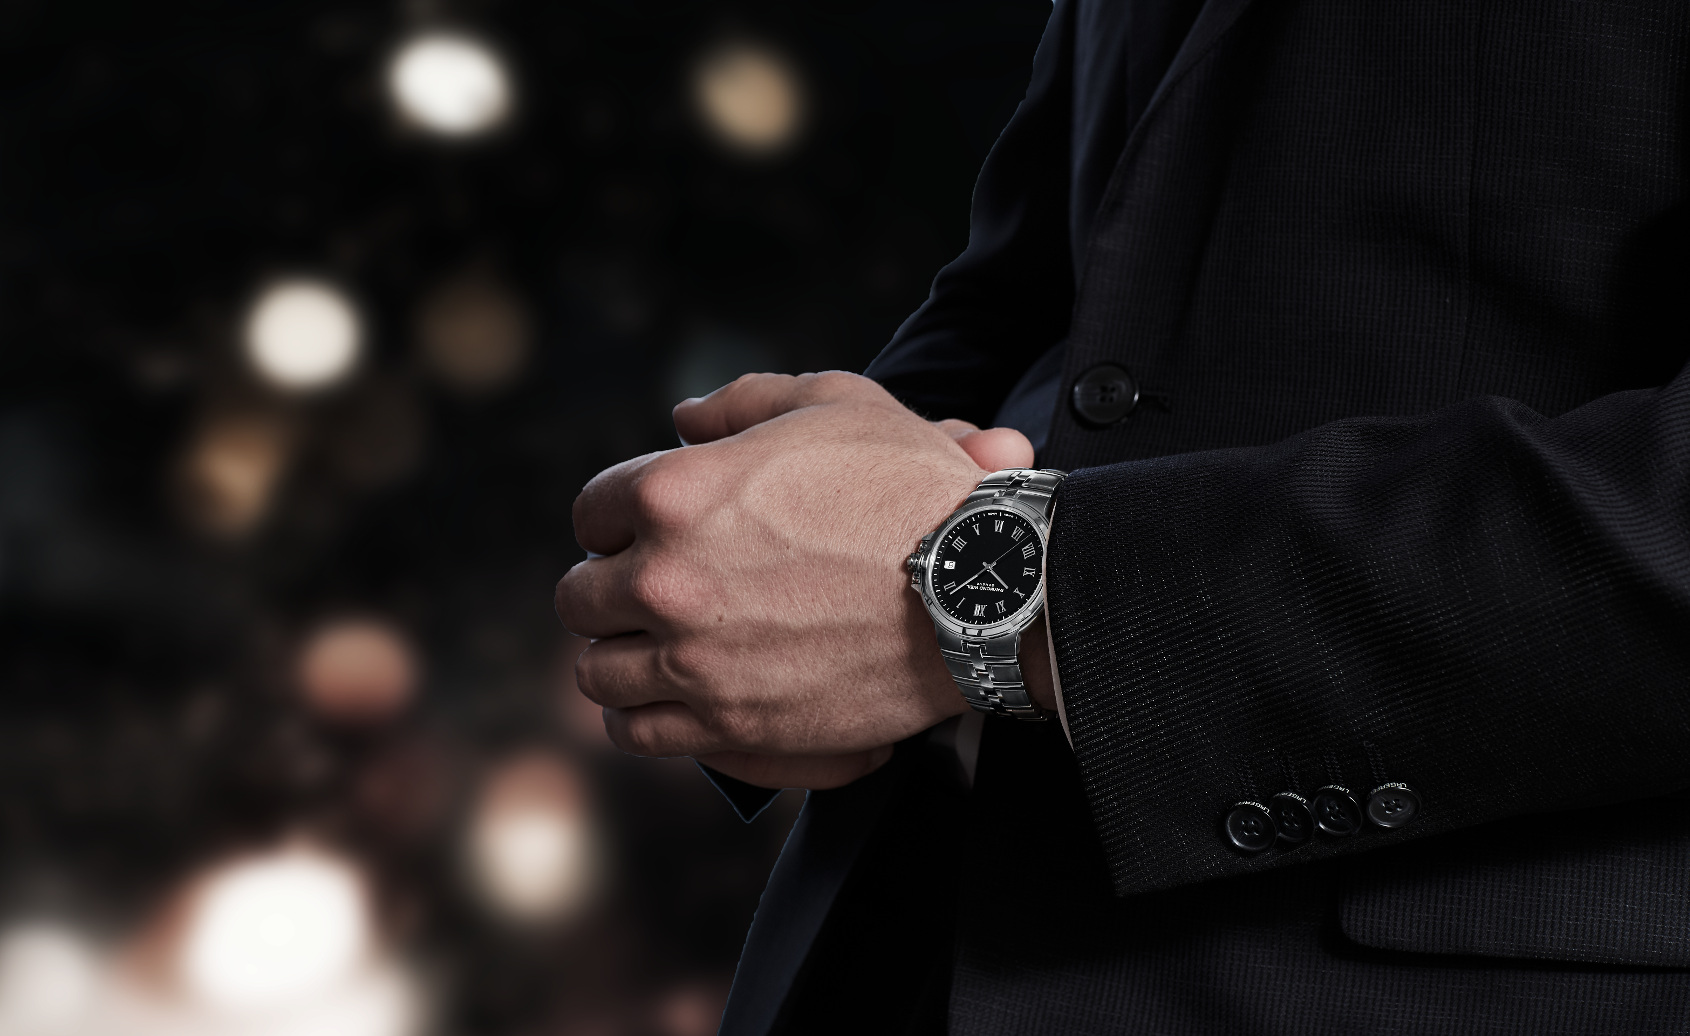 INTRODUCING: A watch for the opera – the Raymond Weil Parsifal